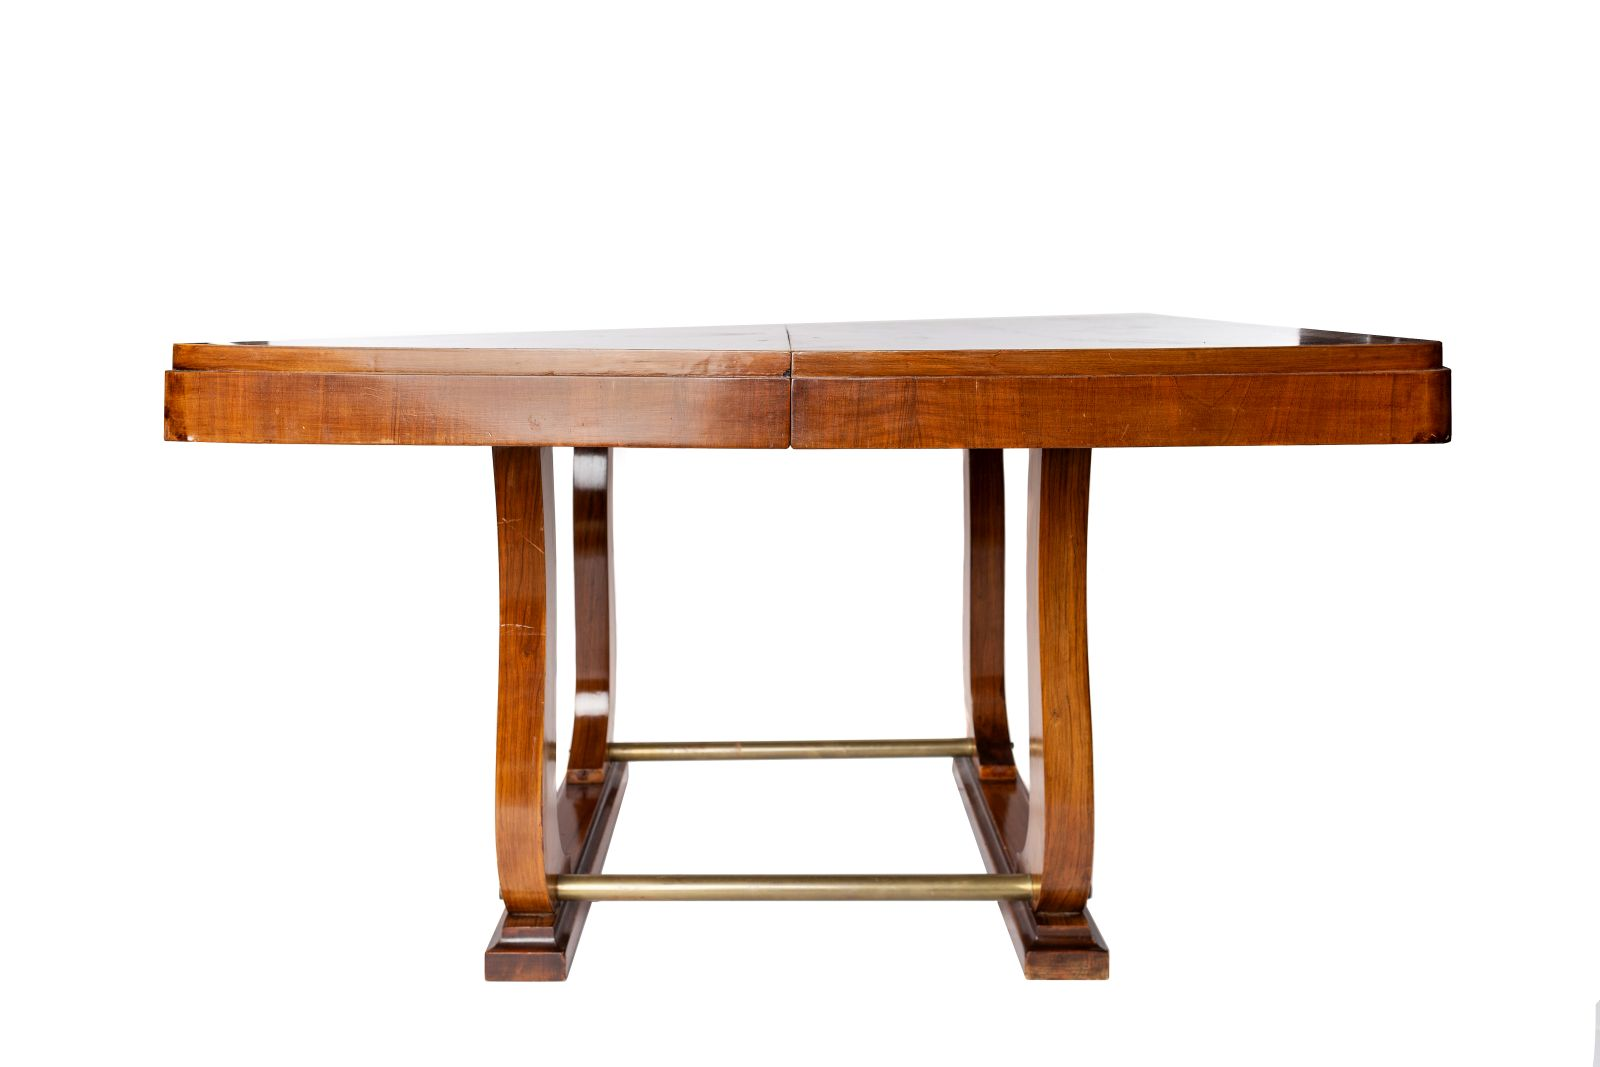 #39 Dining table with extending top, veneered, Art Deco, around 1930 | Esstisch mit ausziehbarer Platte, furniert, Art Déco, um 1930 Image